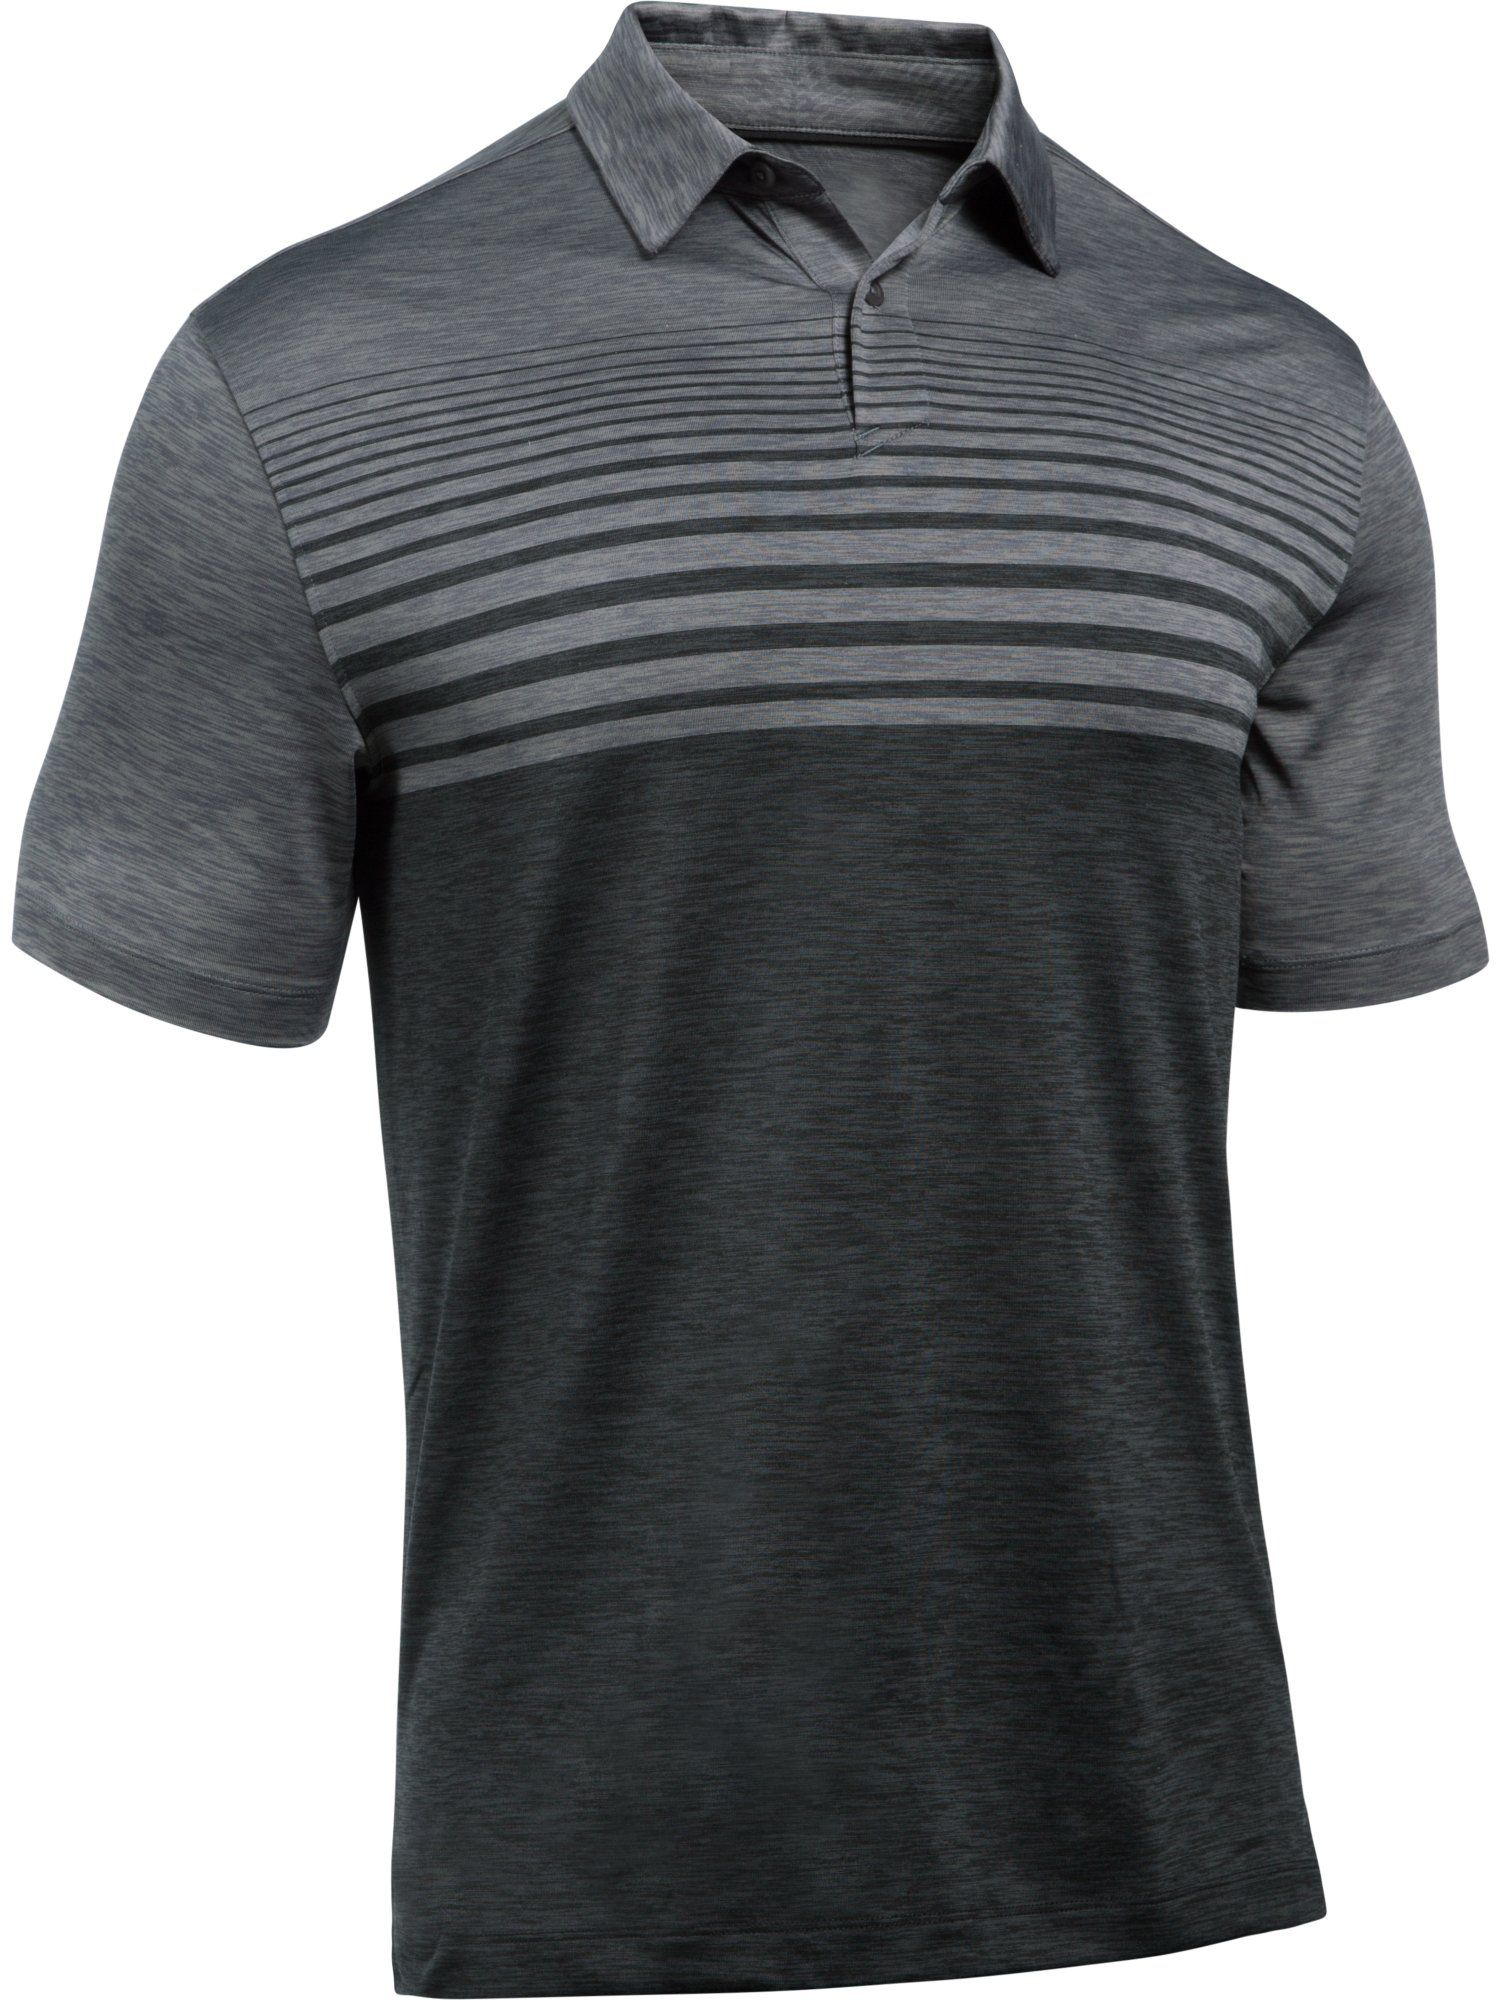 Men's Under Armour Coolswitch Upright Stripe Polo Shirt, Grey